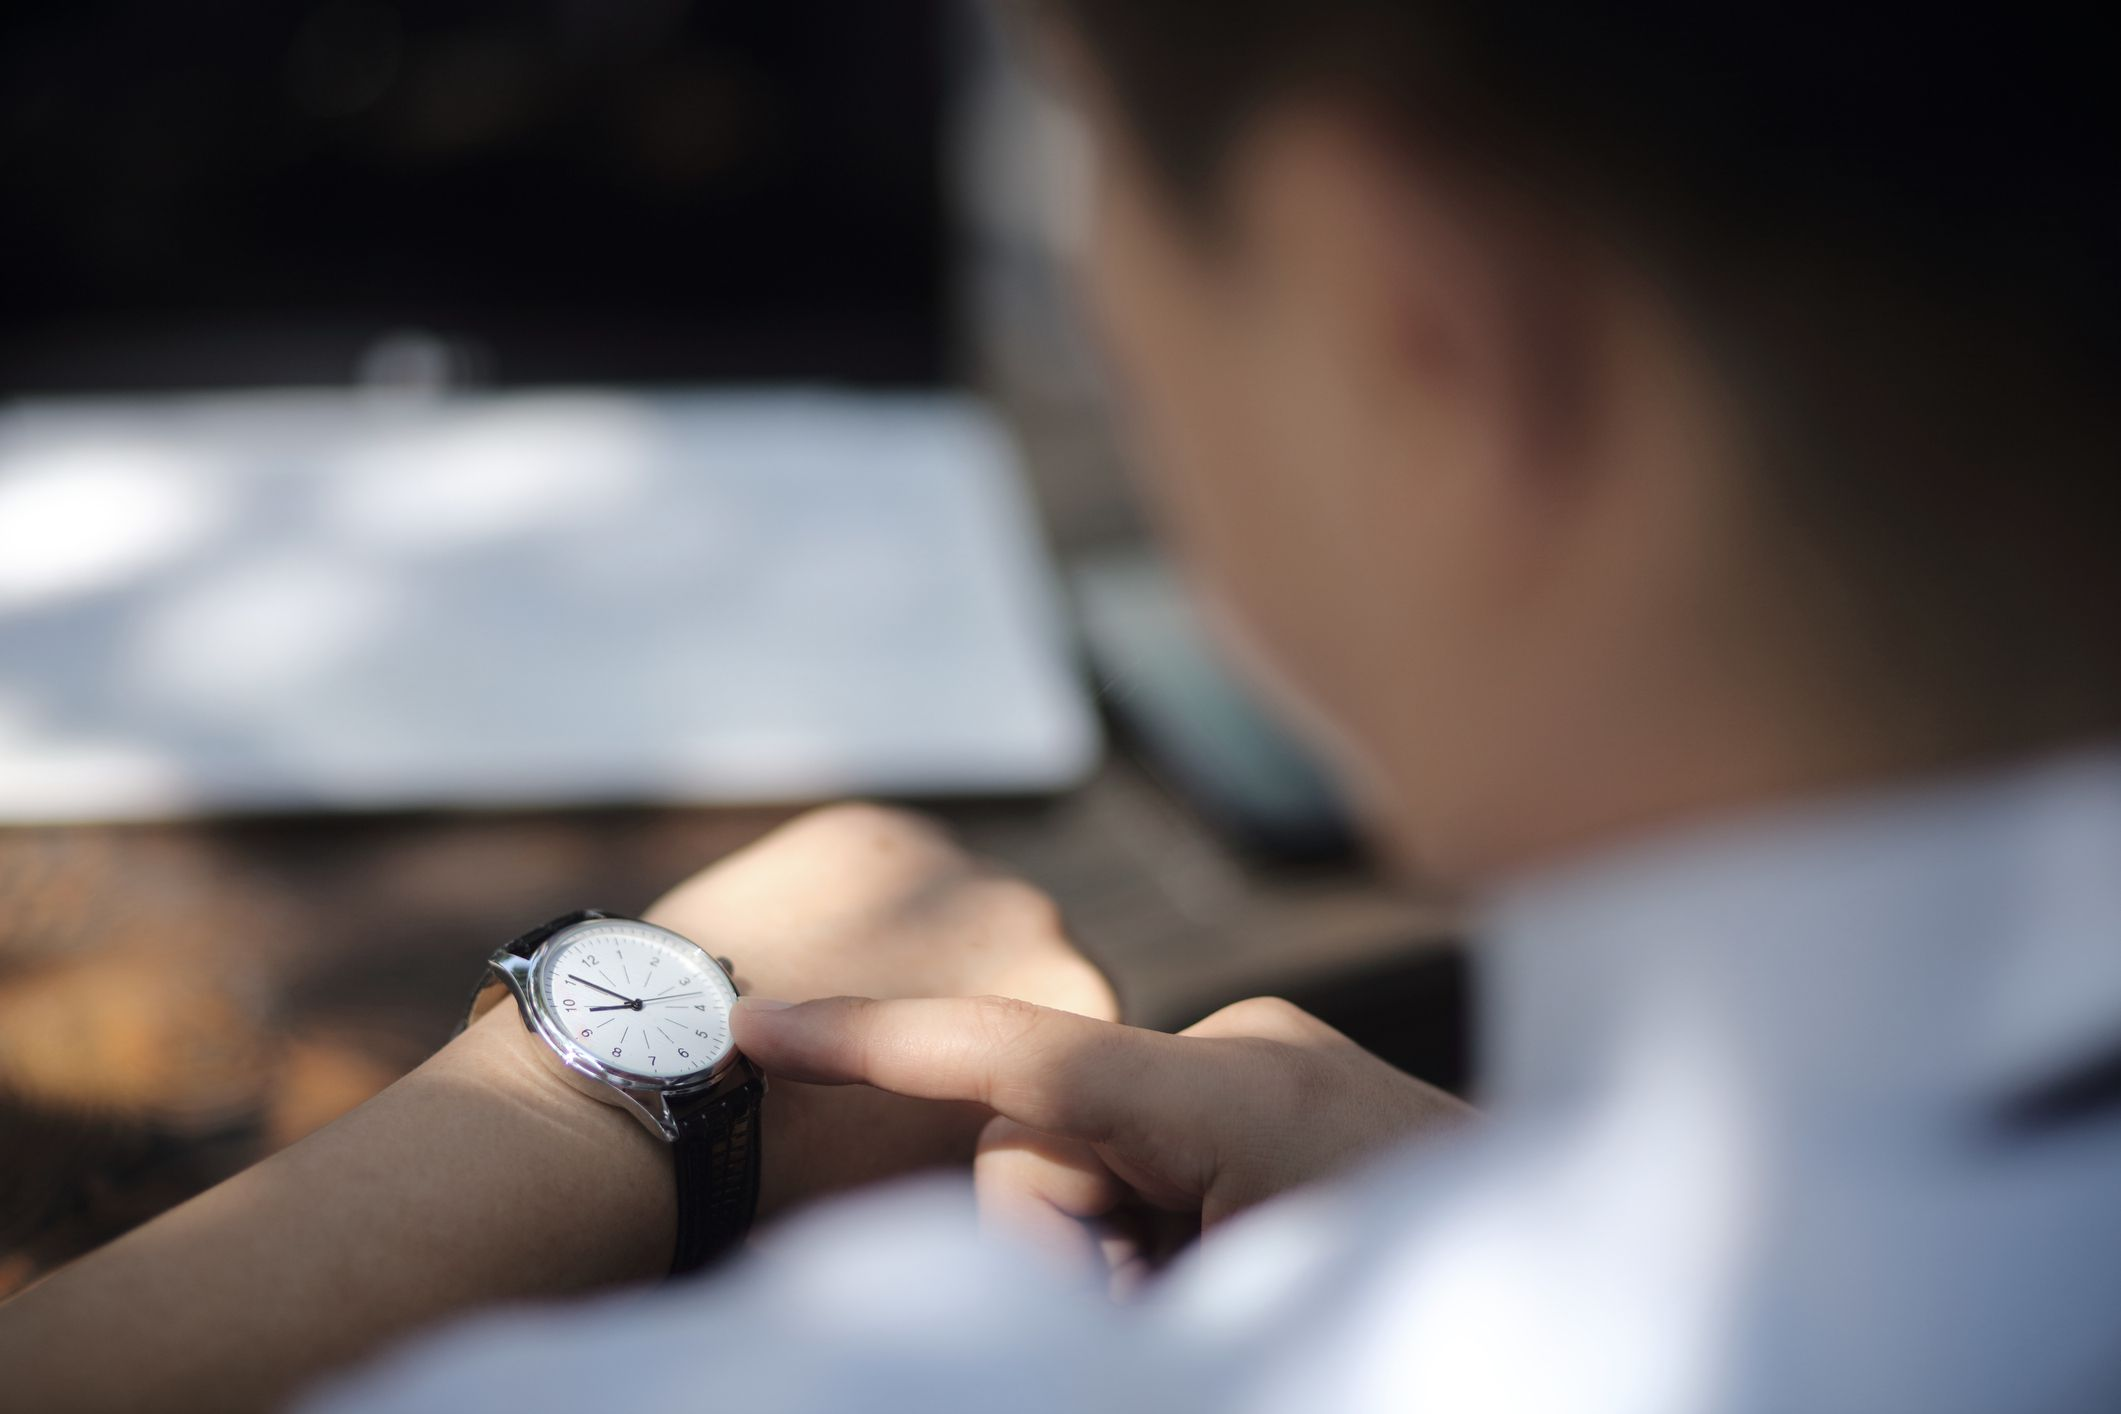 Man checking the time on his watch